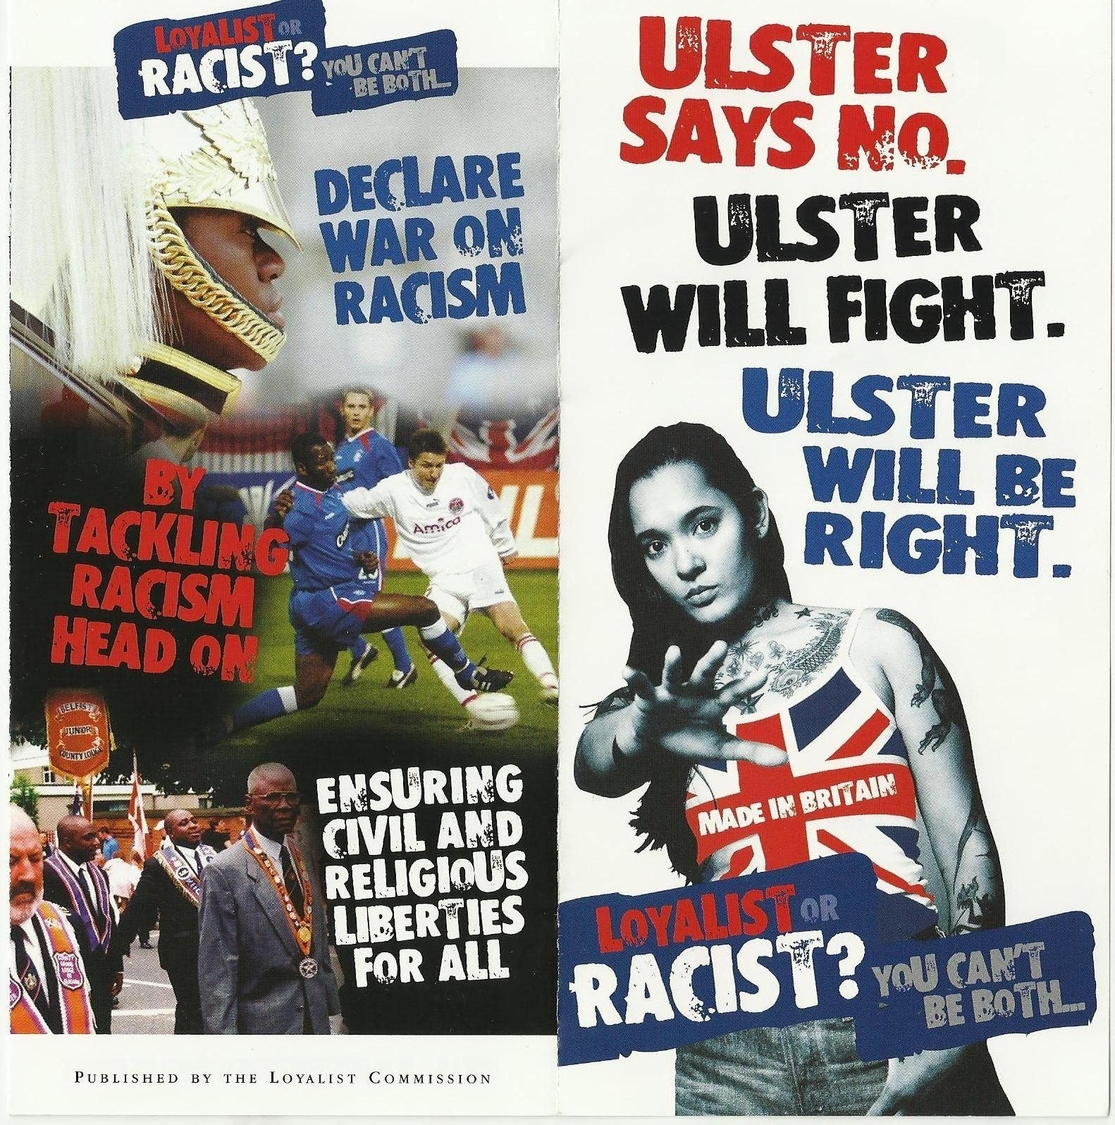 The Loyalist Commission produced a leaflet on racism.